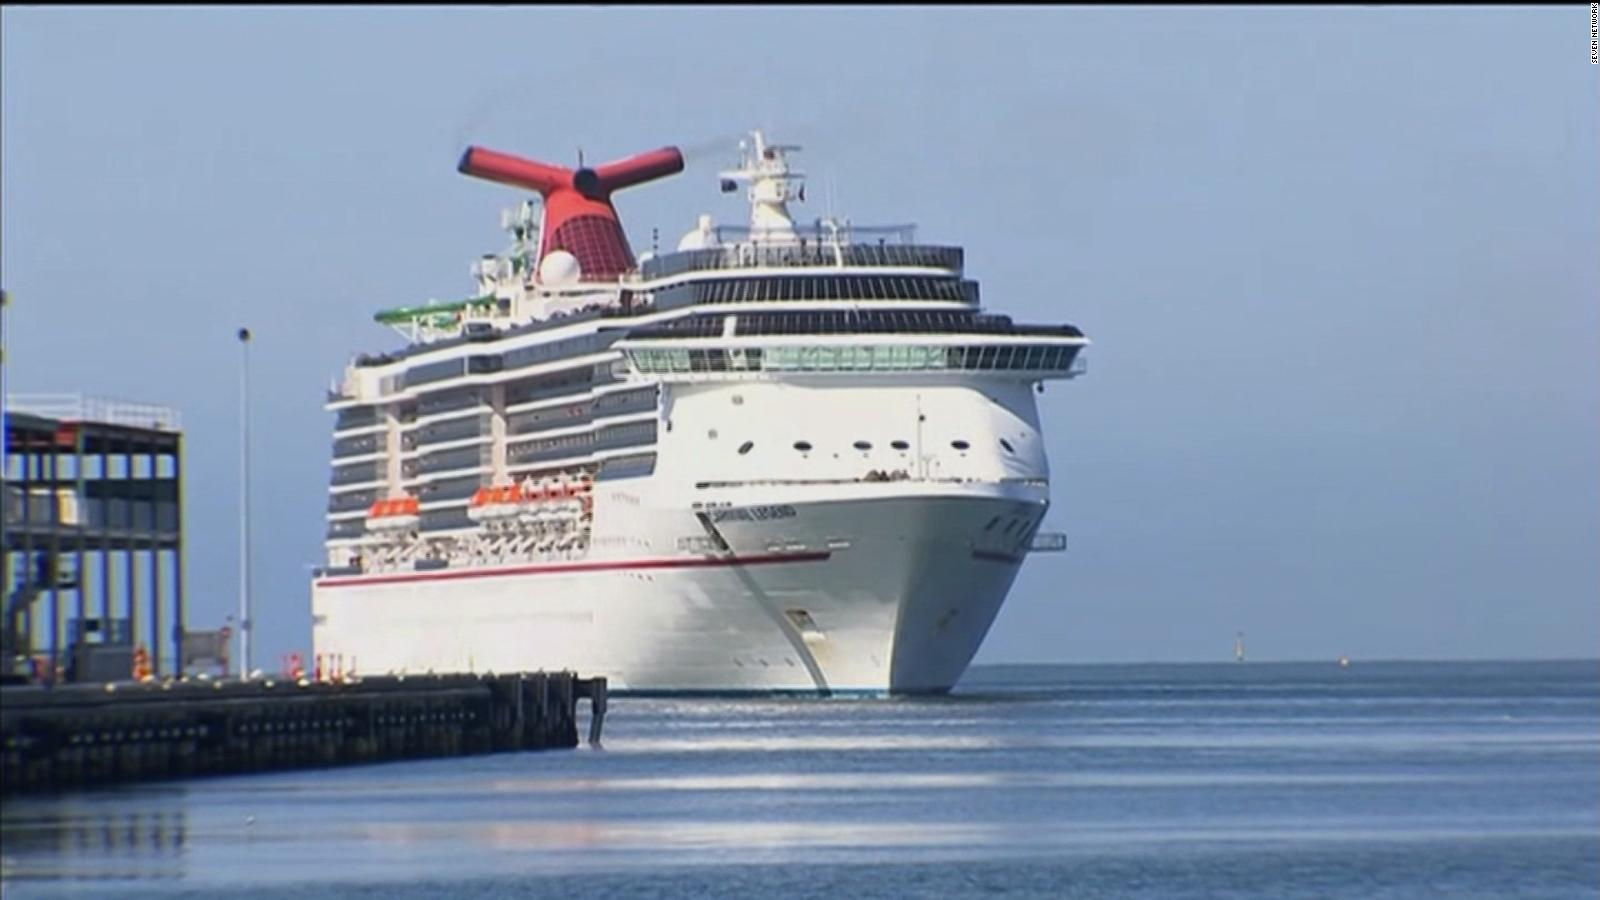 Passengers Removed From Cruise Ship After Brawls CNN - Cell phone service on cruise ships